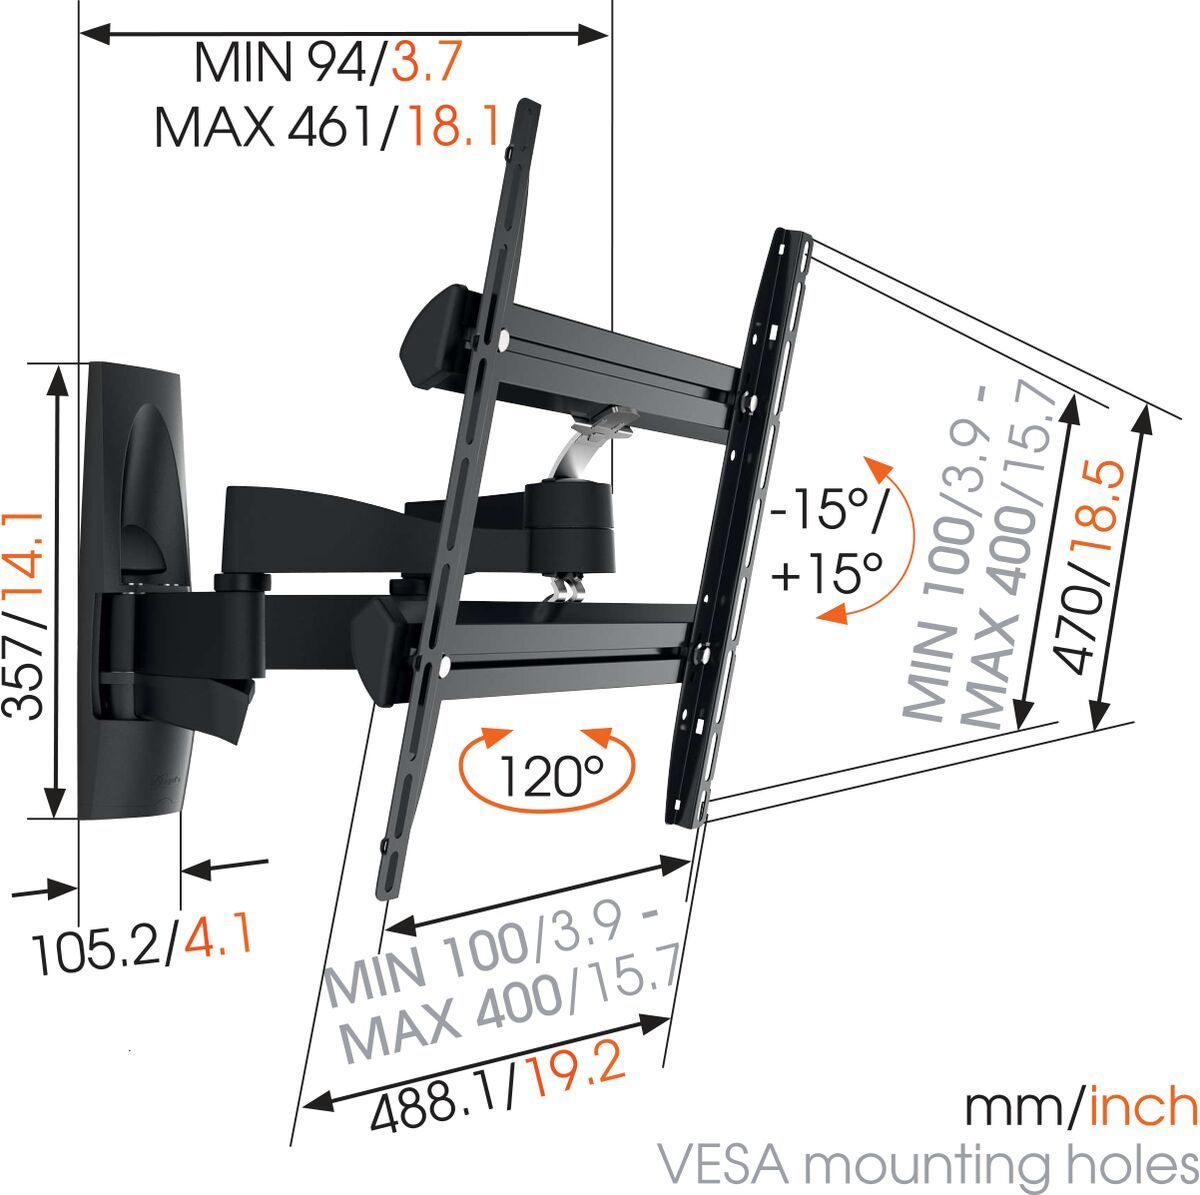 Vogel's WALL 2250 Full-Motion TV Wall Mount - Suitable for Forward and turning motion (up to 120°) - Suitable for Tilt up to 15° - Suitable for Dimensions